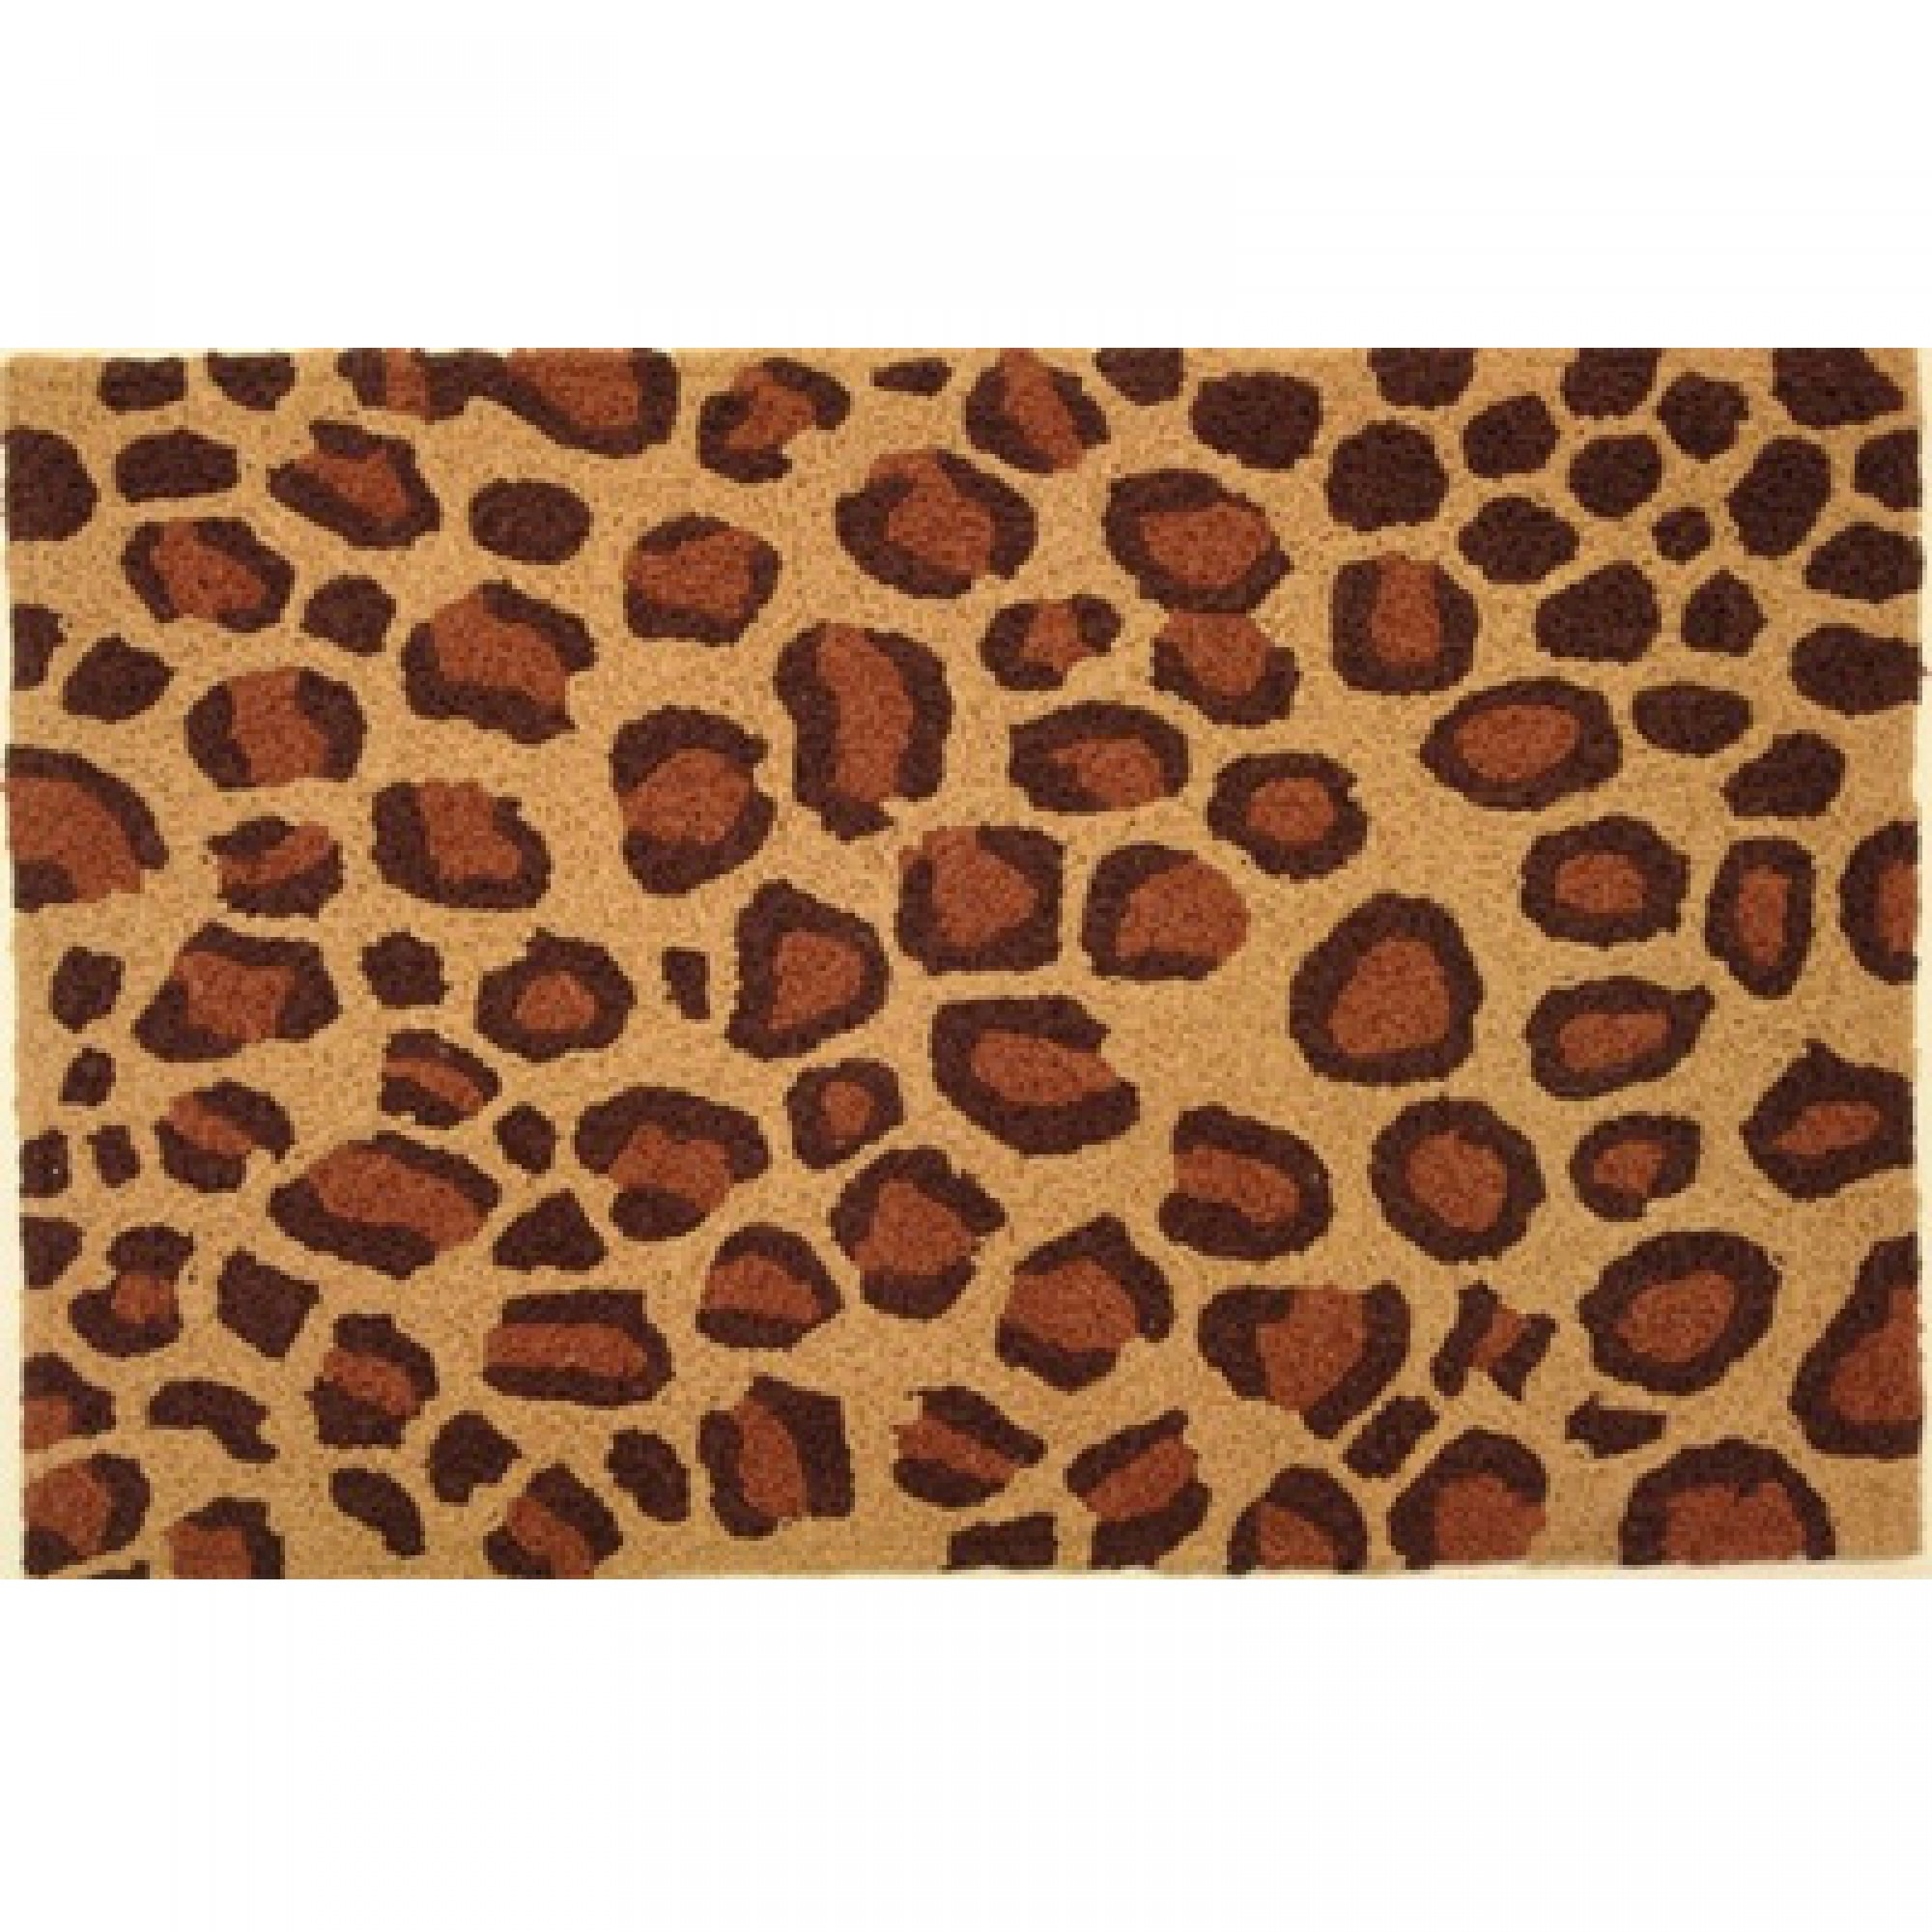 tufted x overstock home hand wool cheetah print indo garden shipping leopard rug today herat oriental free product